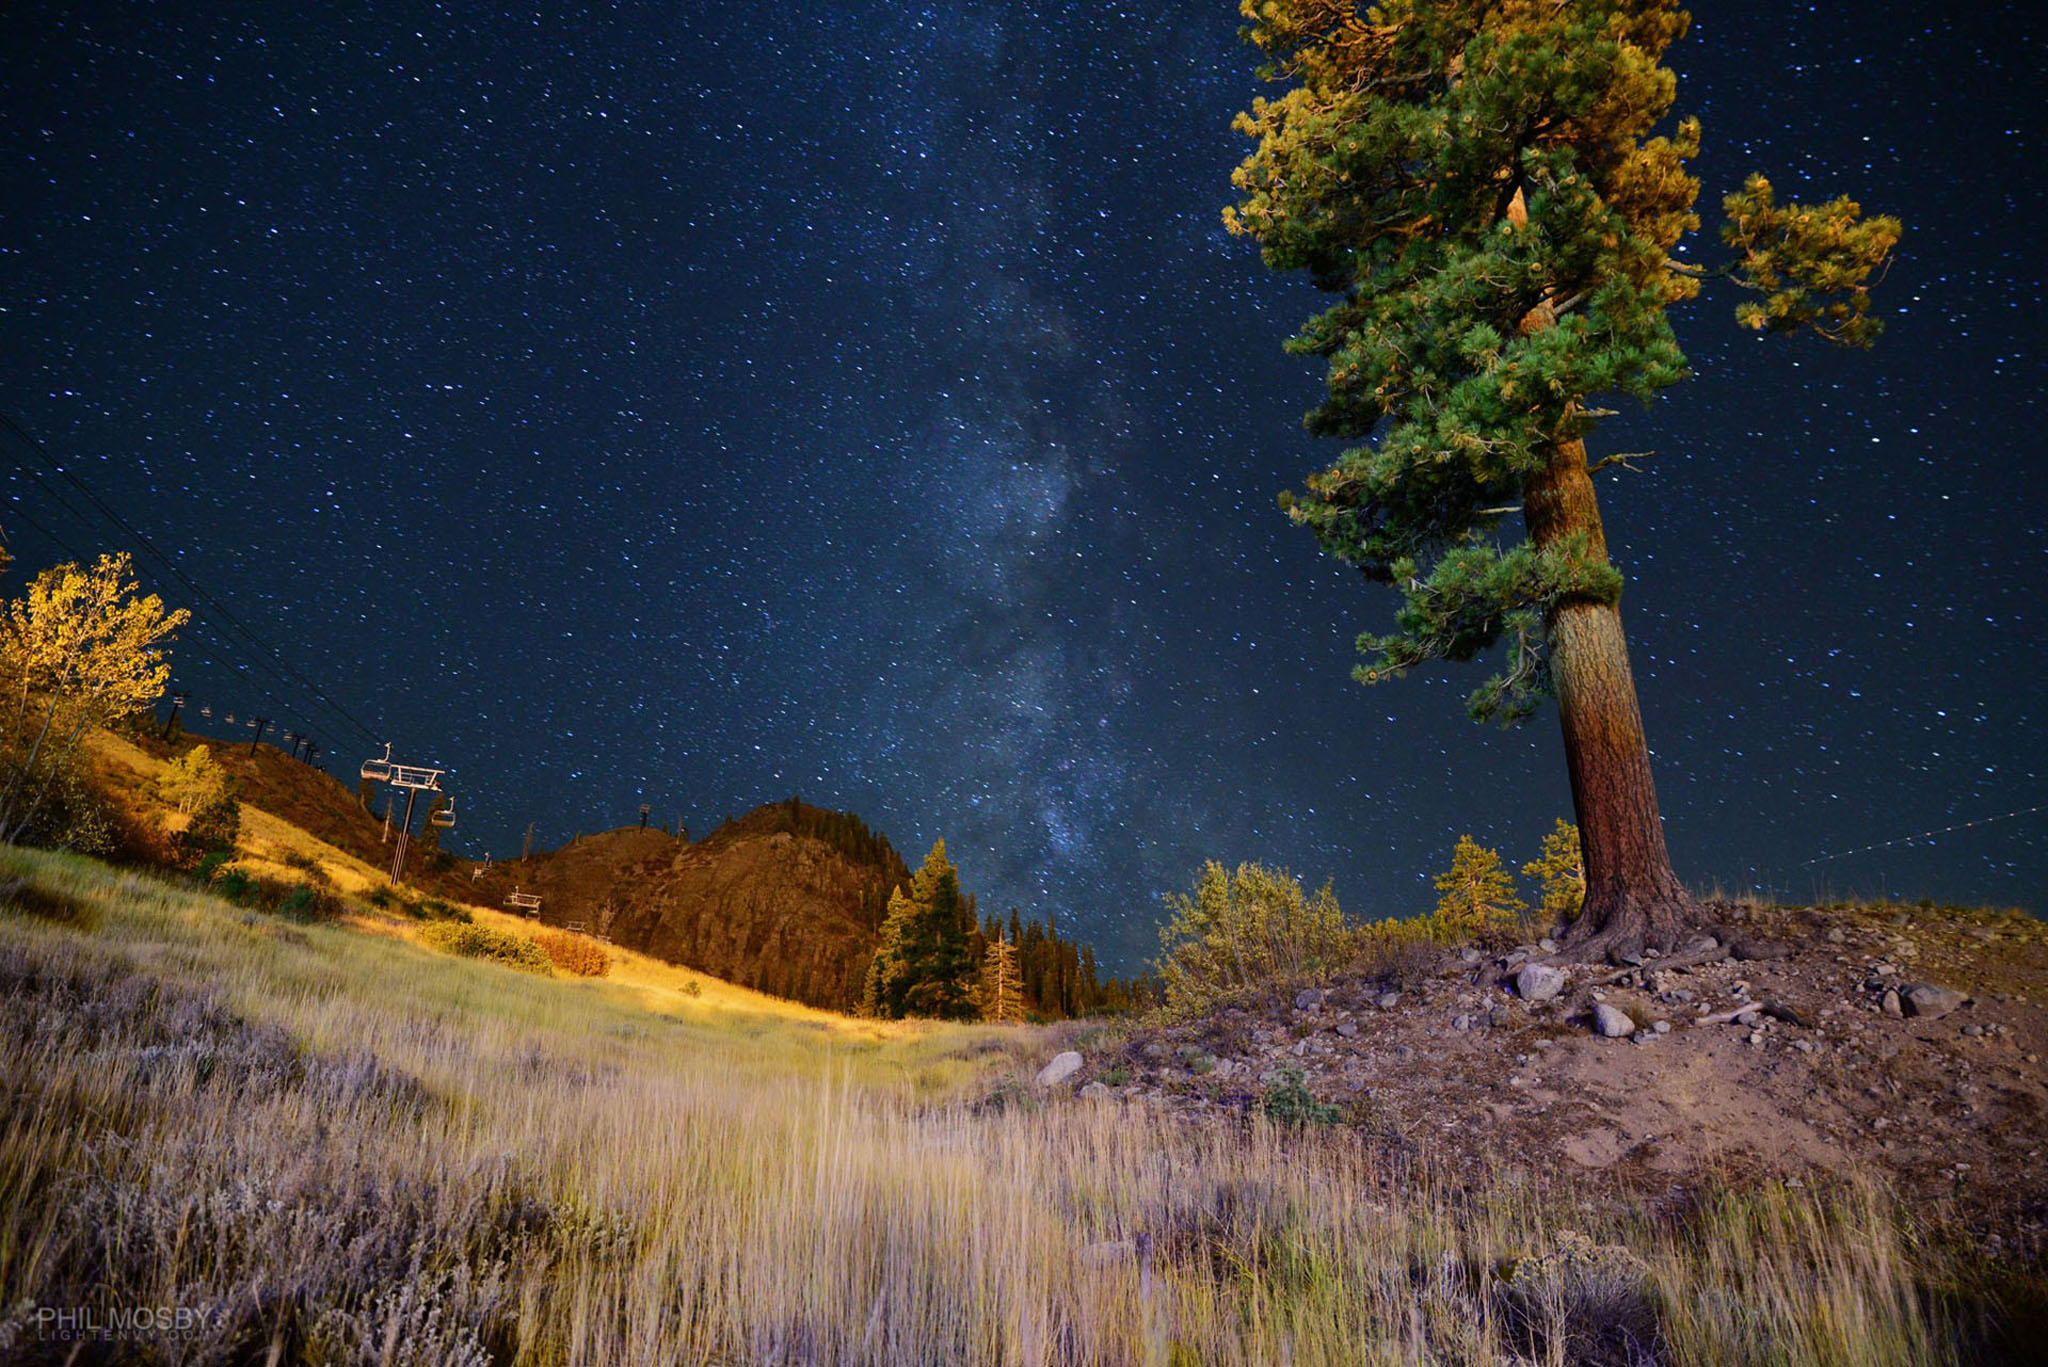 Stars over Squaw - The Milky Way sh